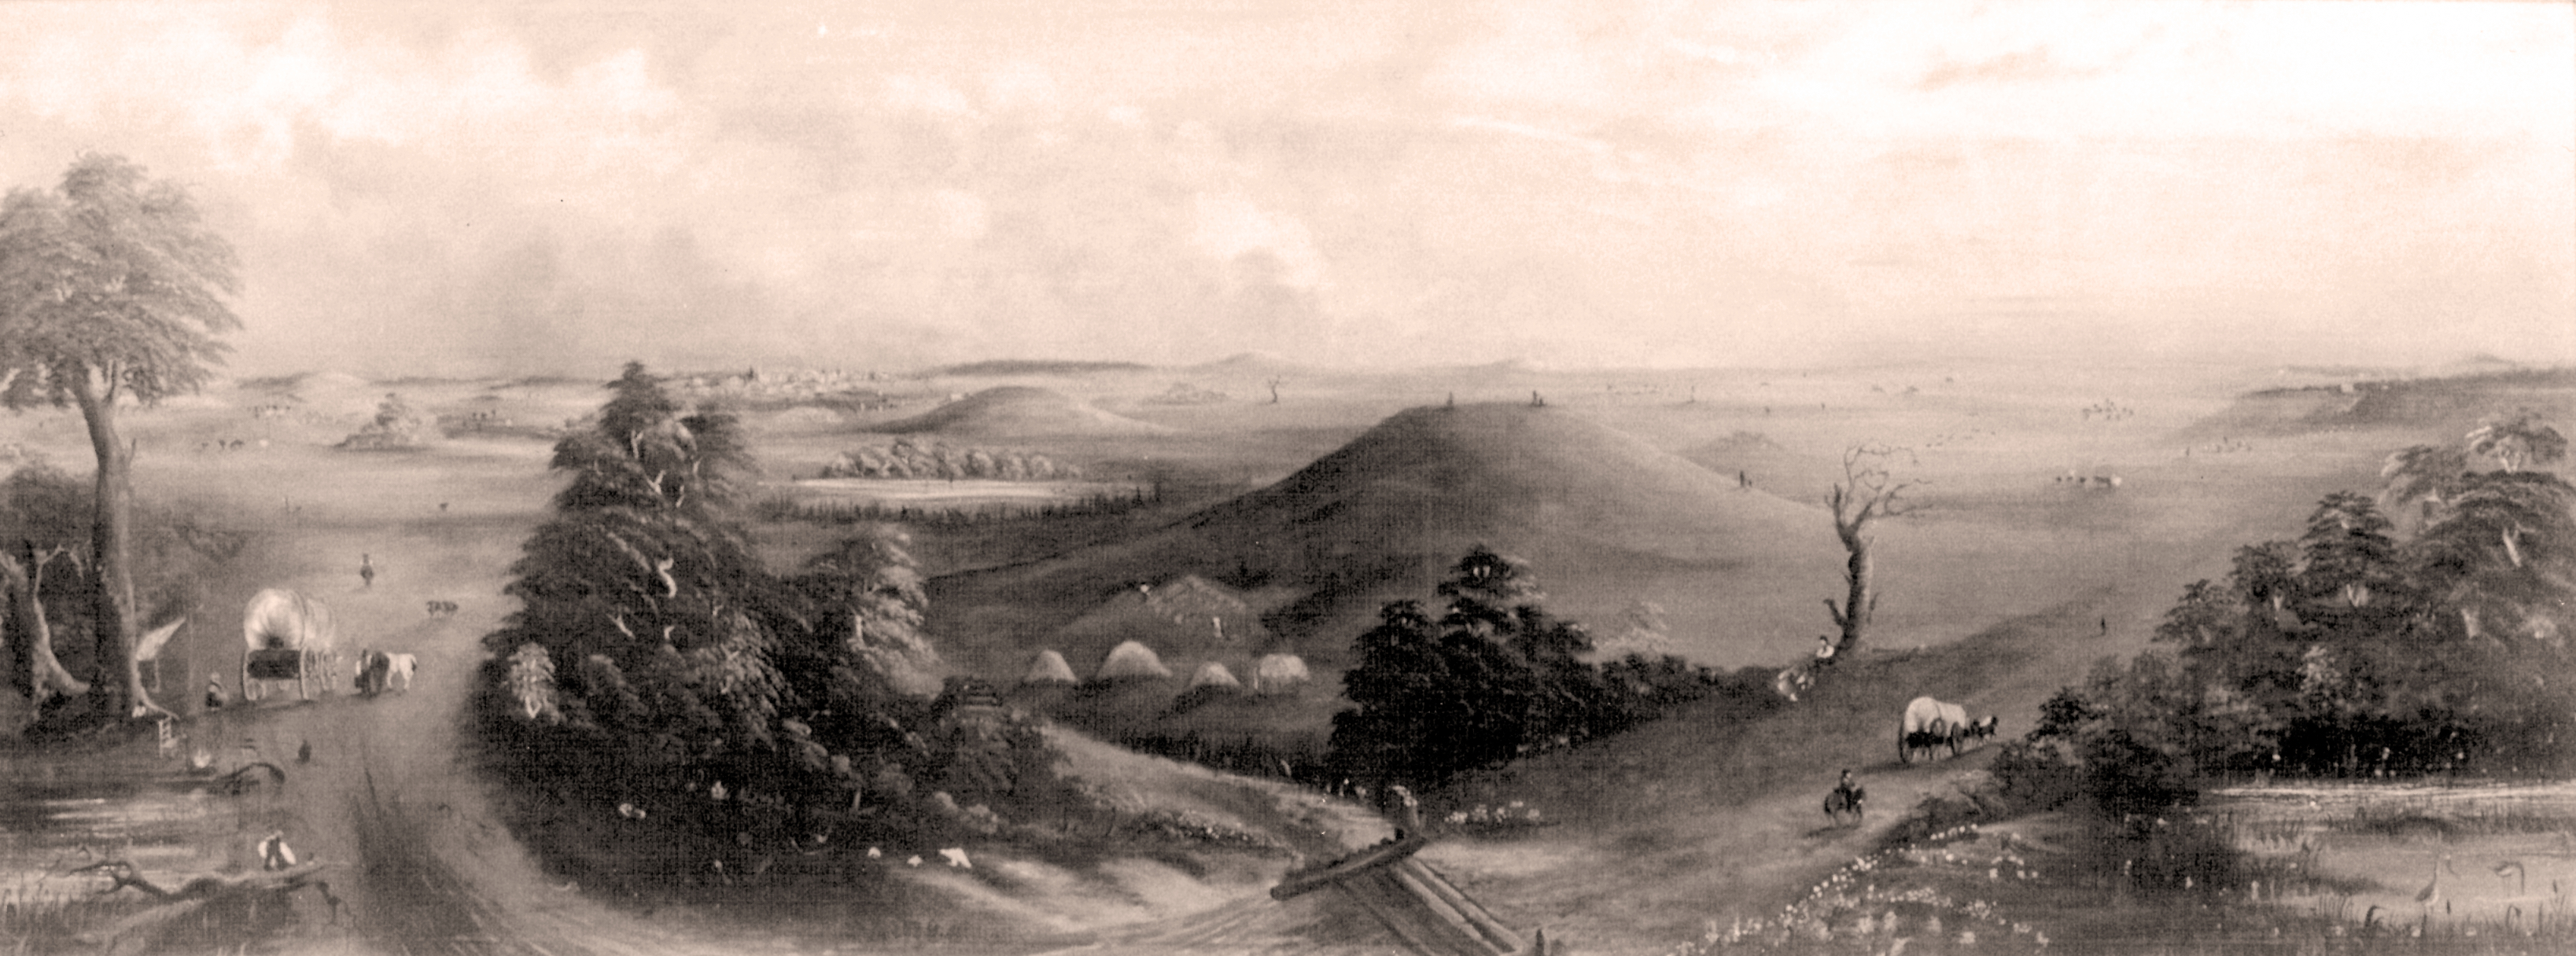 19th Century watercolor painting of the East St. Louis Mound Center